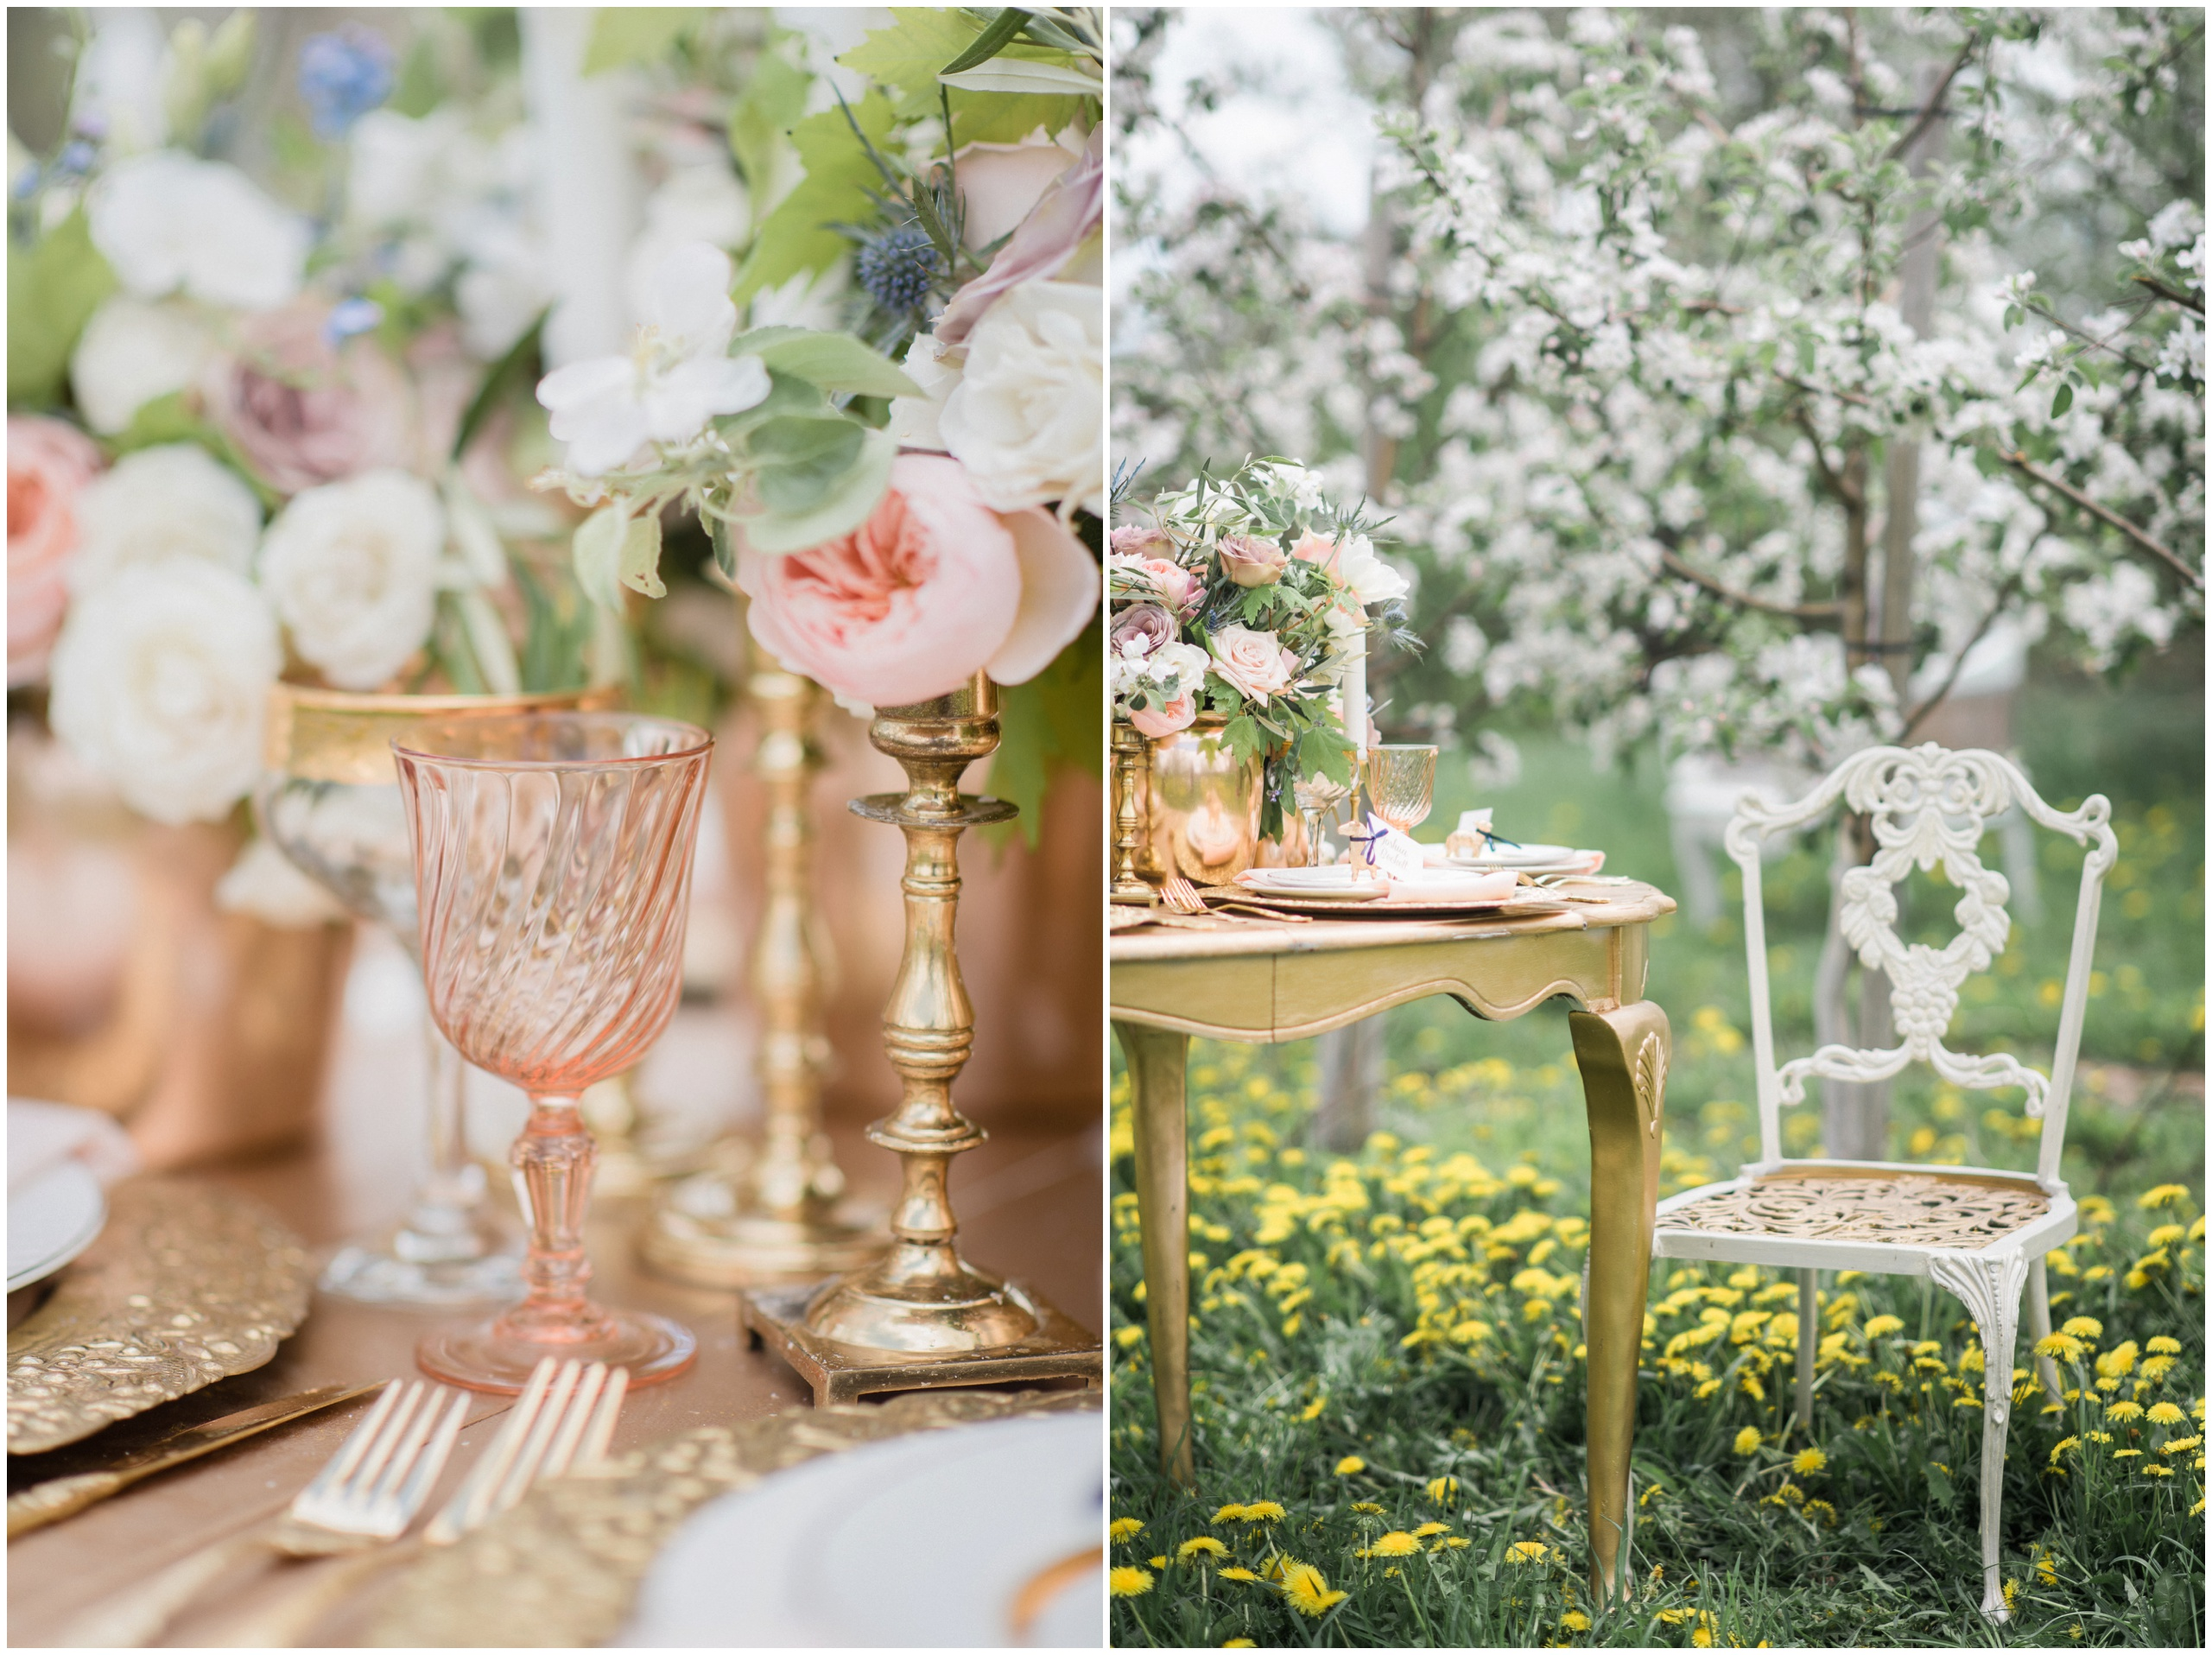 Wedding Inspiration: Wedding table featuring blush macarons, gold charger plates, and gold accents.